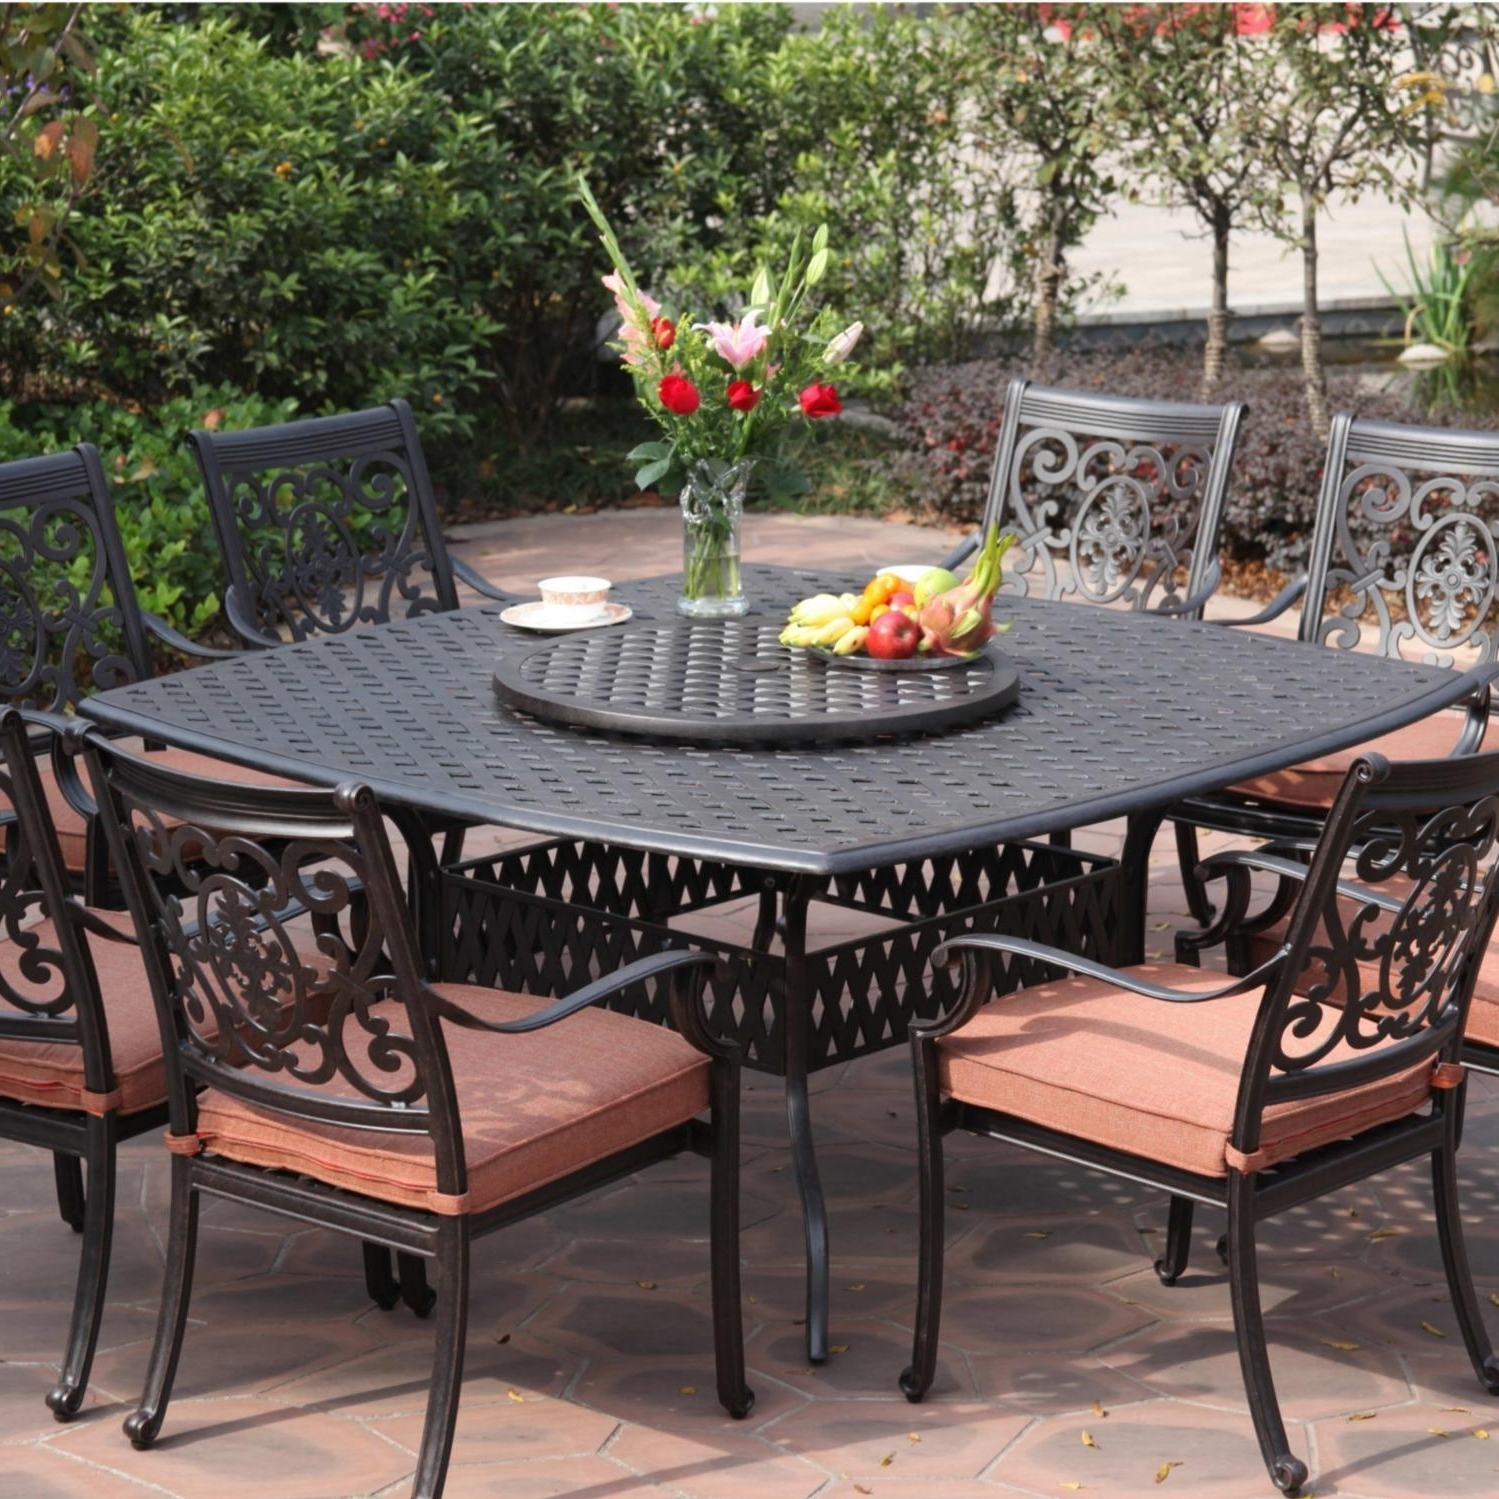 Best And Newest Small Patio Furniture Rectangular Table With Umbrella Hole 72 Round Pertaining To Small Patio Tables With Umbrellas Hole (View 4 of 20)